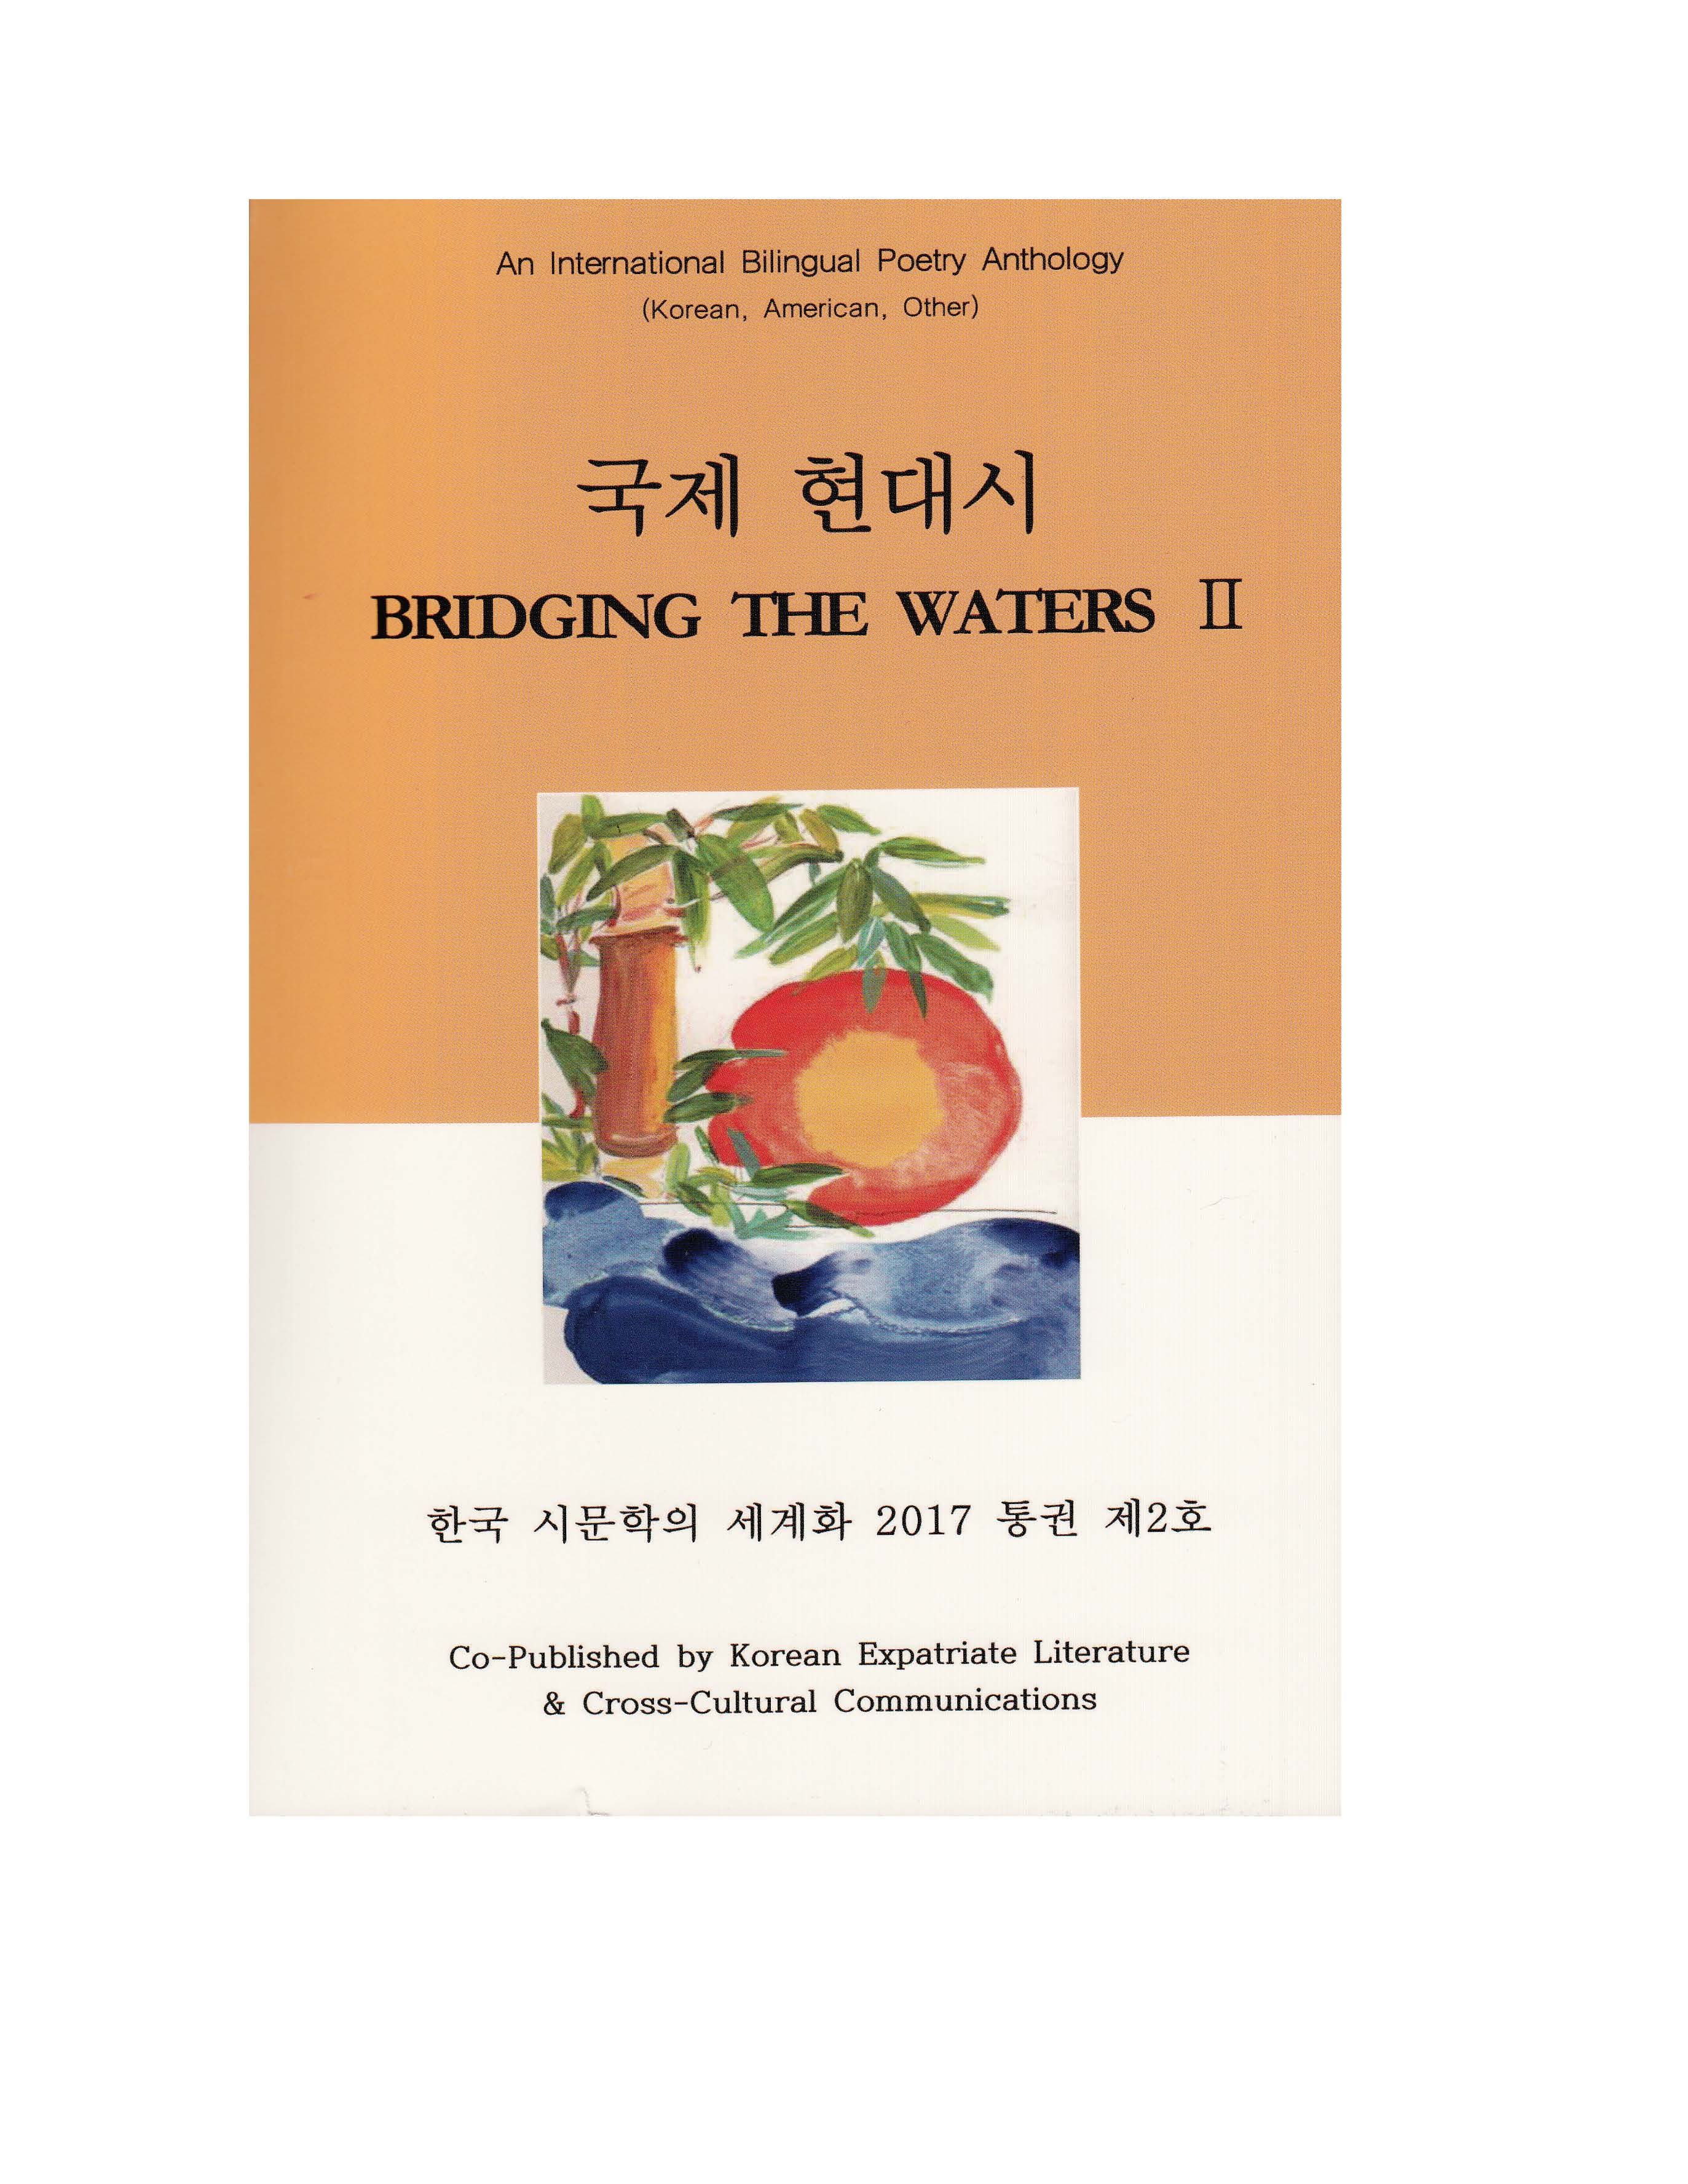 Bridging the Waters II: An International Bilingual Poetry Anthology (Korean, American, International)